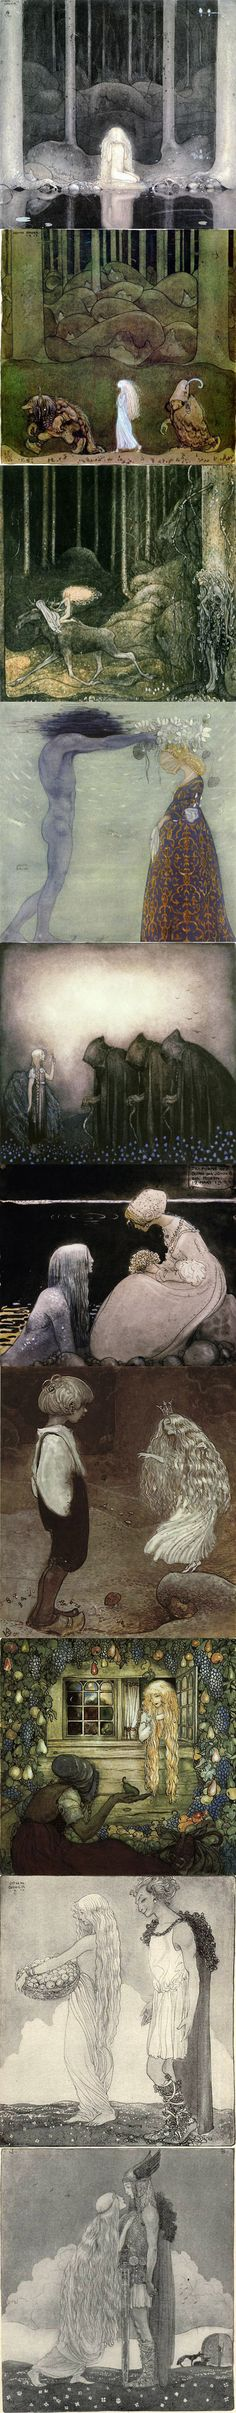 Trolls and other fairytales - John Bauer Småland, Sweden Art And Illustration, John Bauer, Fairytale Art, Art Plastique, Les Oeuvres, Art Inspo, Fantasy Art, Fairy Tales, Cool Art